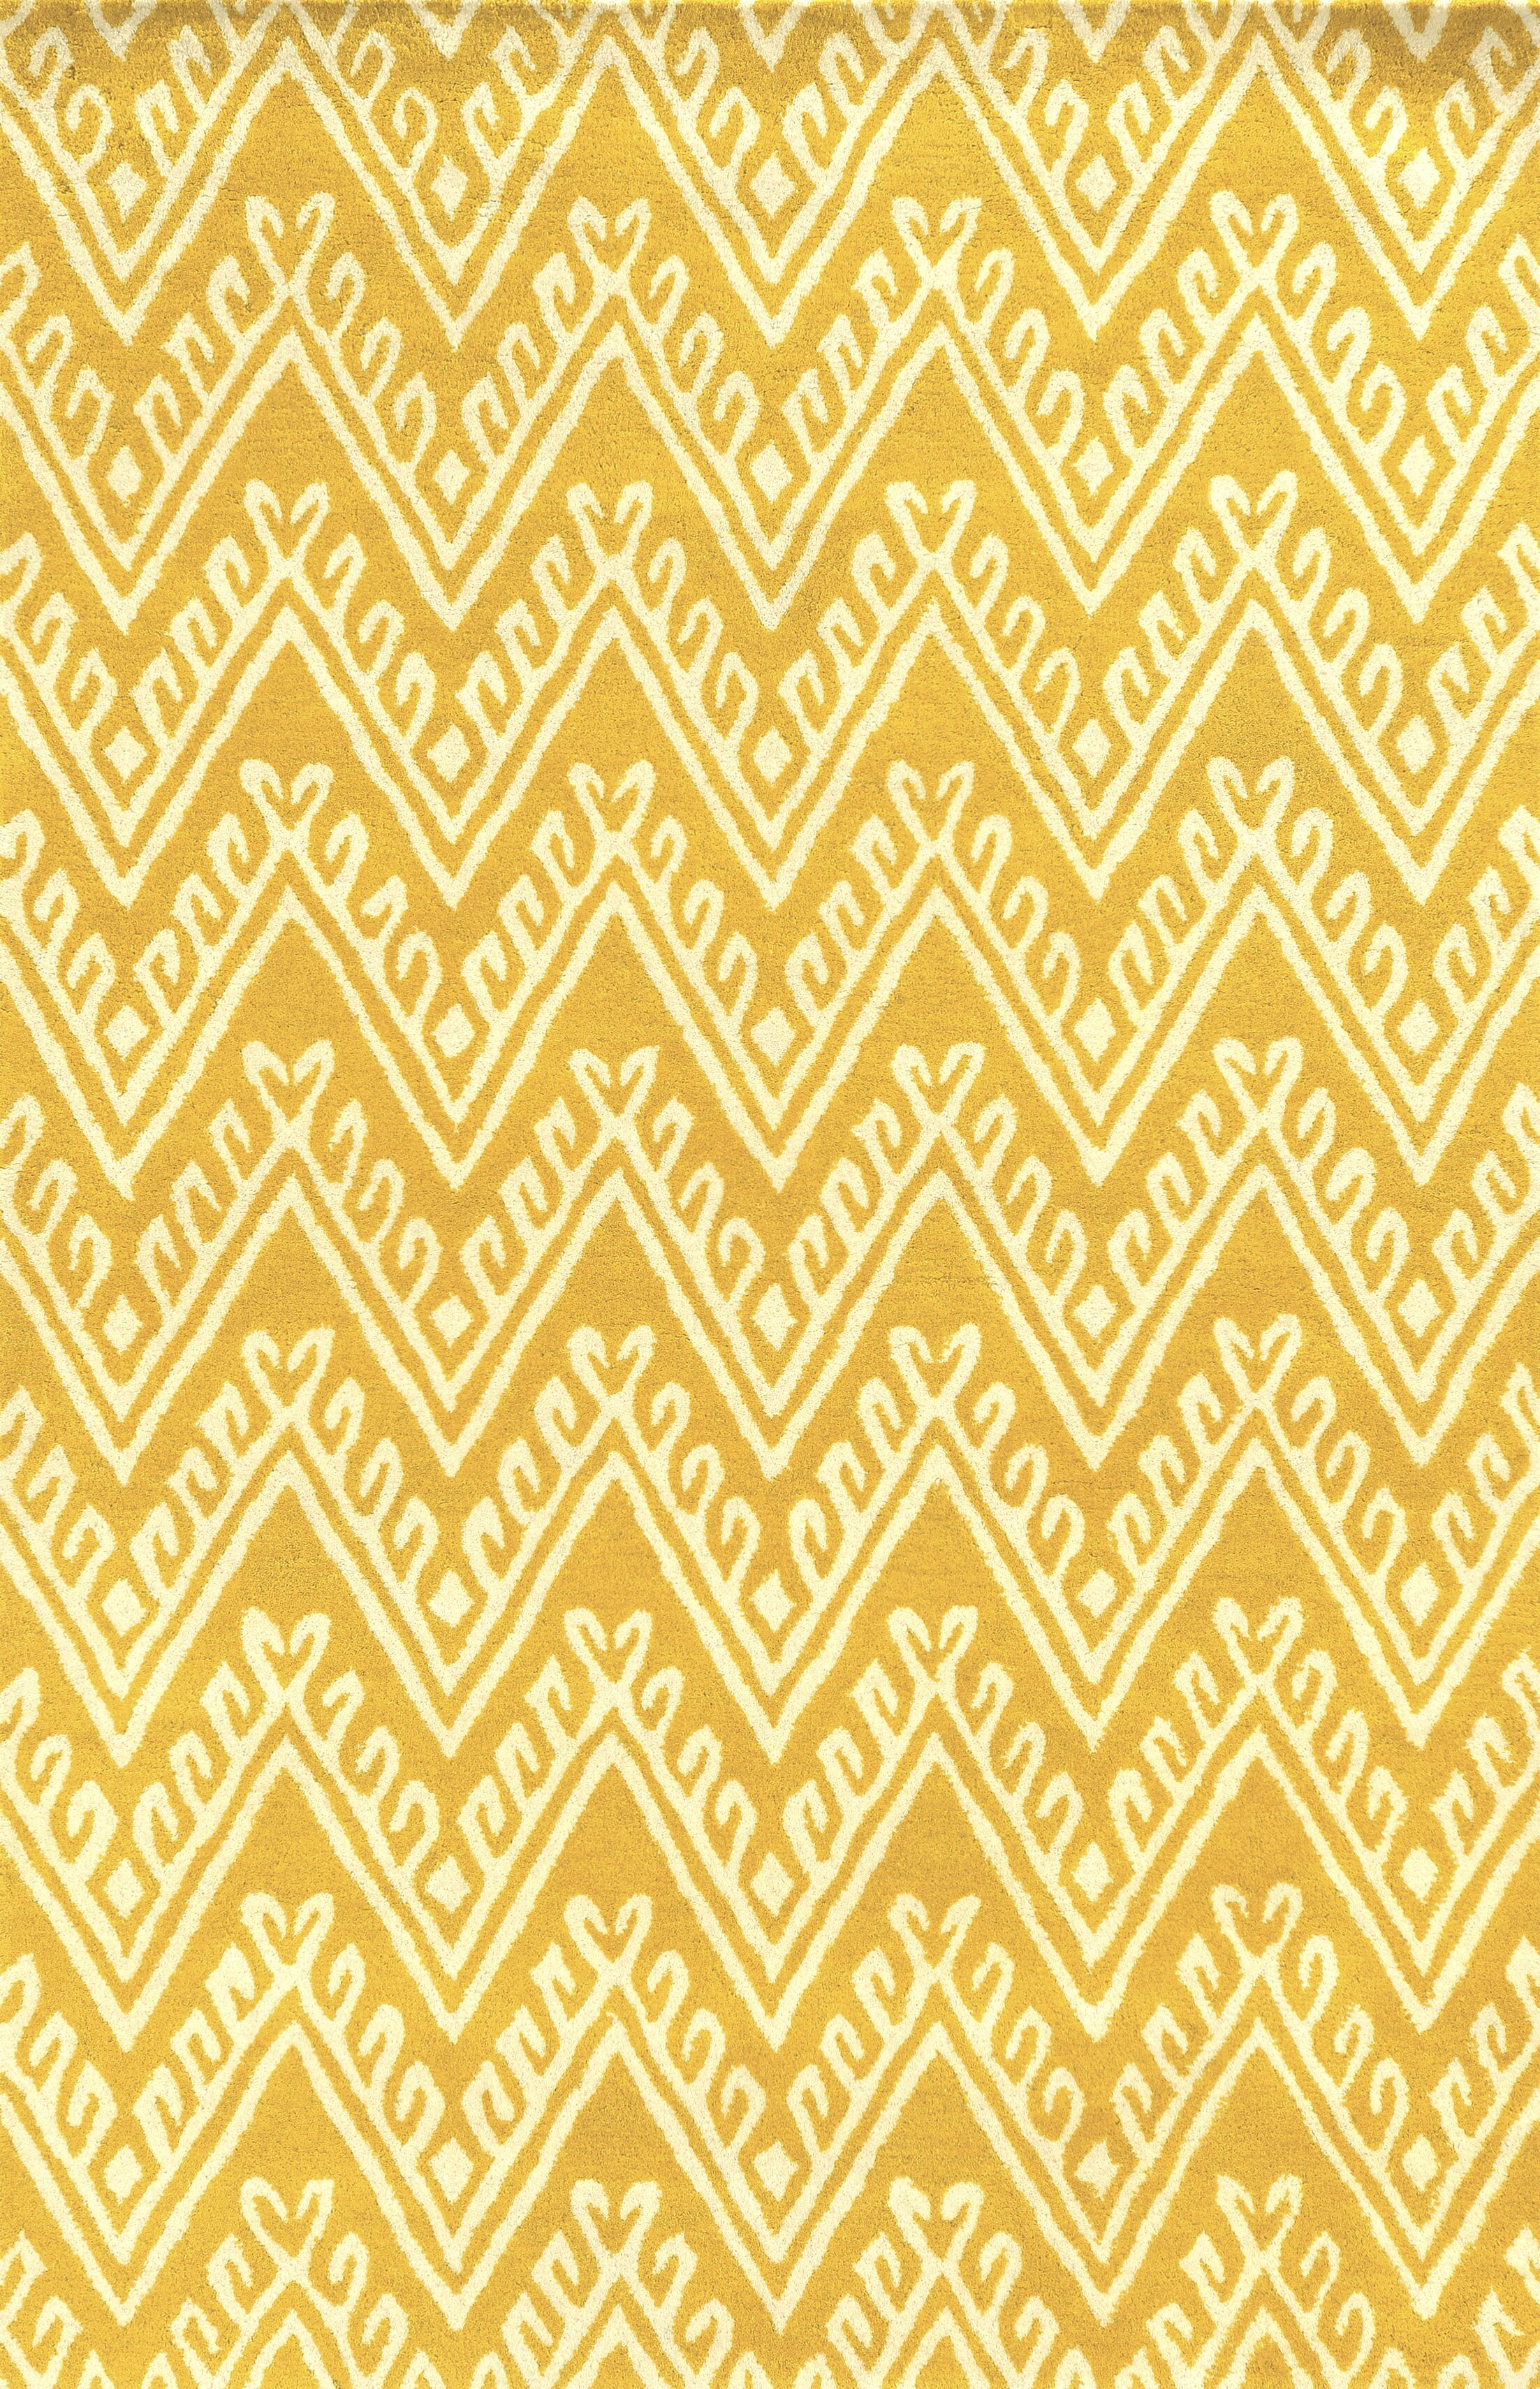 Santo Hand-Tufted Yellow Area Rug Rug Size: Rectangle 8' x 10'